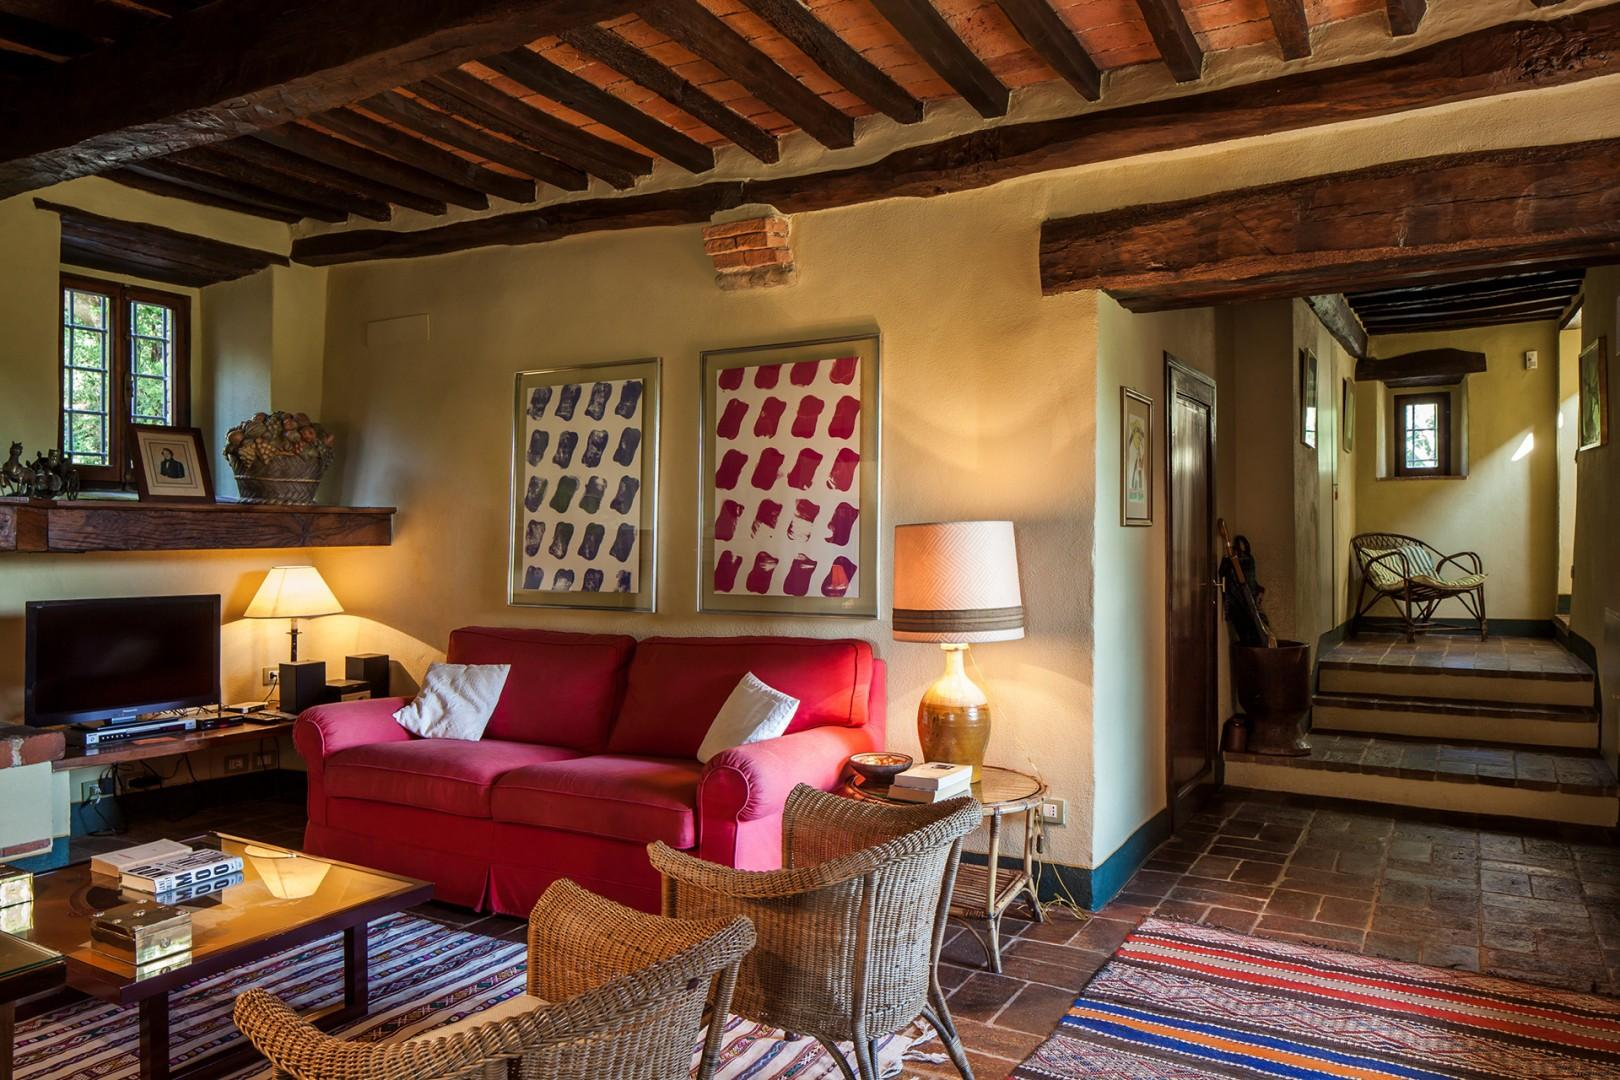 Eclectic artwork, kilim carpets and fabulous beamed ceilings add interest and architectural charm.